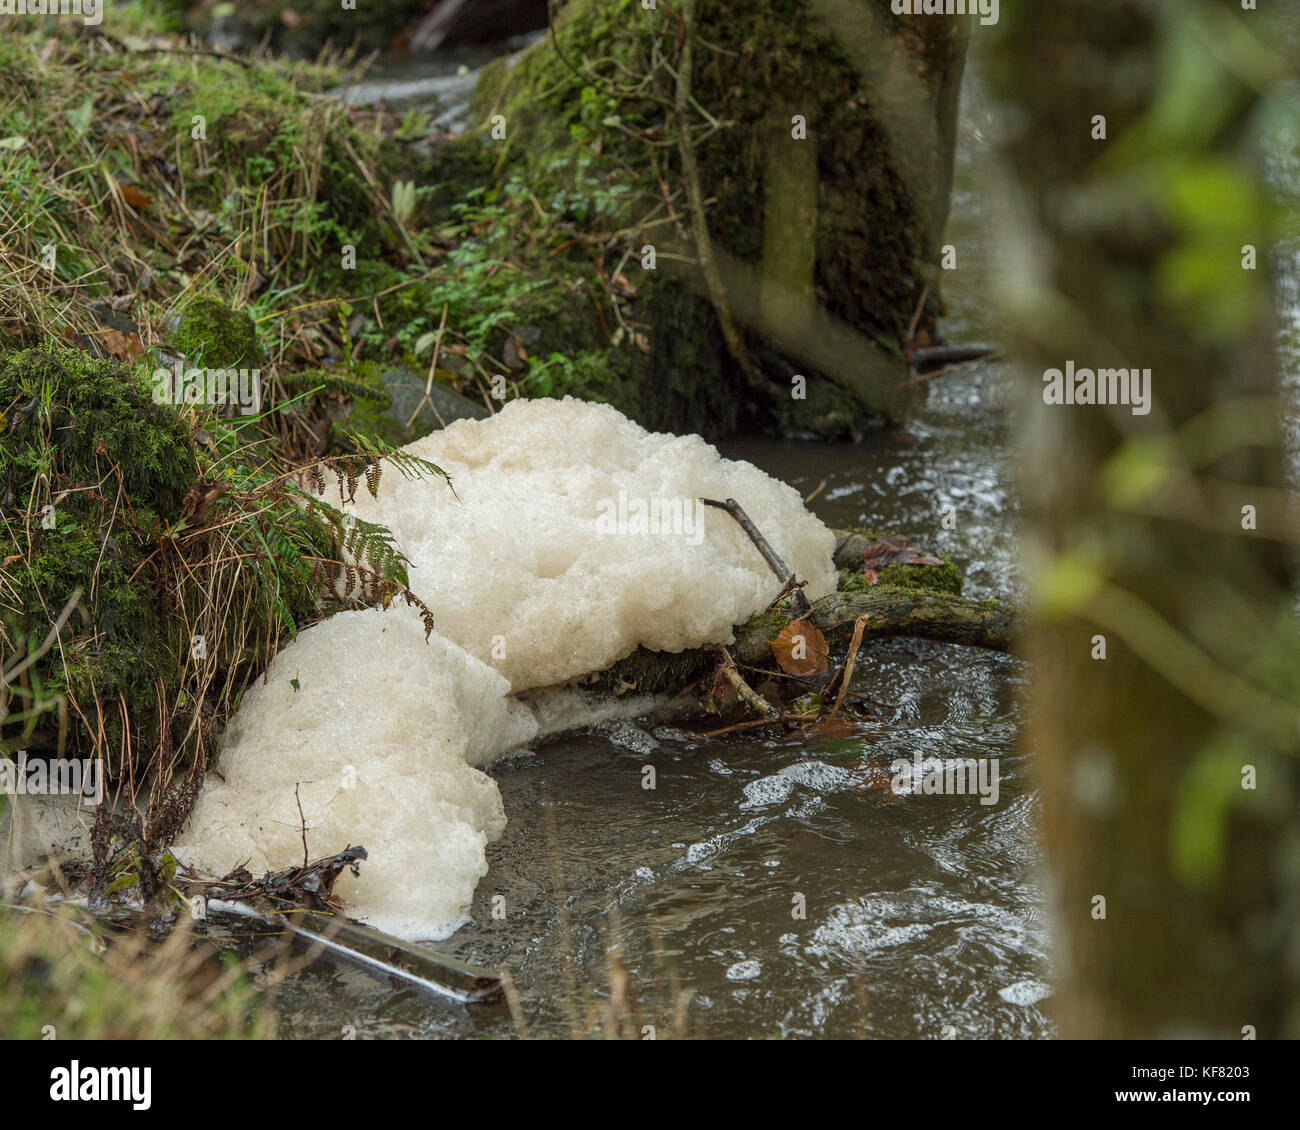 pollution on river - Stock Image